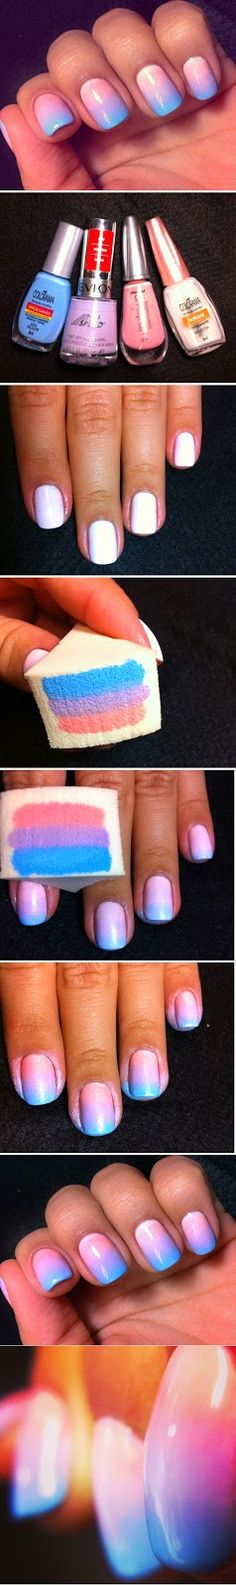 Gorgeous Pastels and Ombre Nails Art Design Tutorials / LoLus Nails Fashion